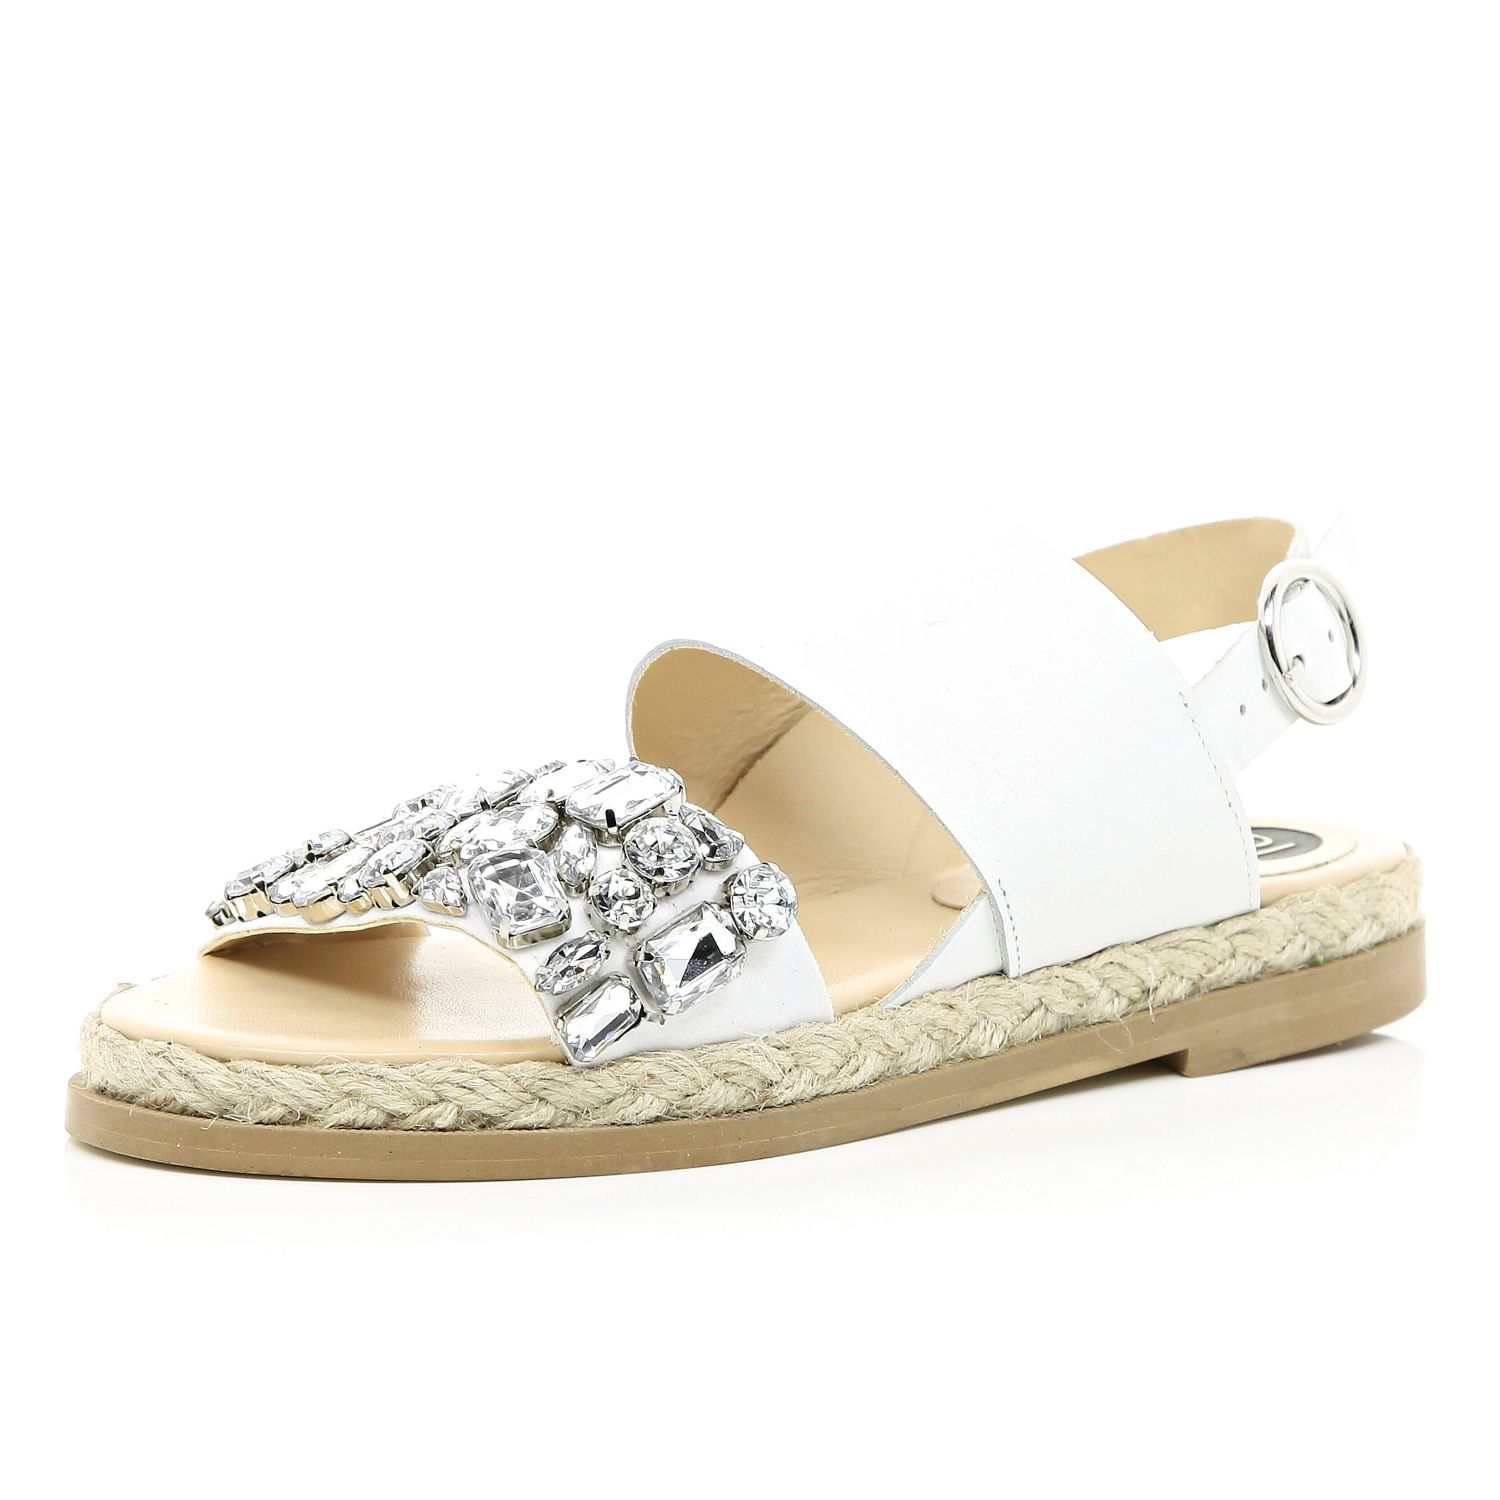 4dfa9defdf0 River Island White Embellished Espadrille Sandals in White - Lyst